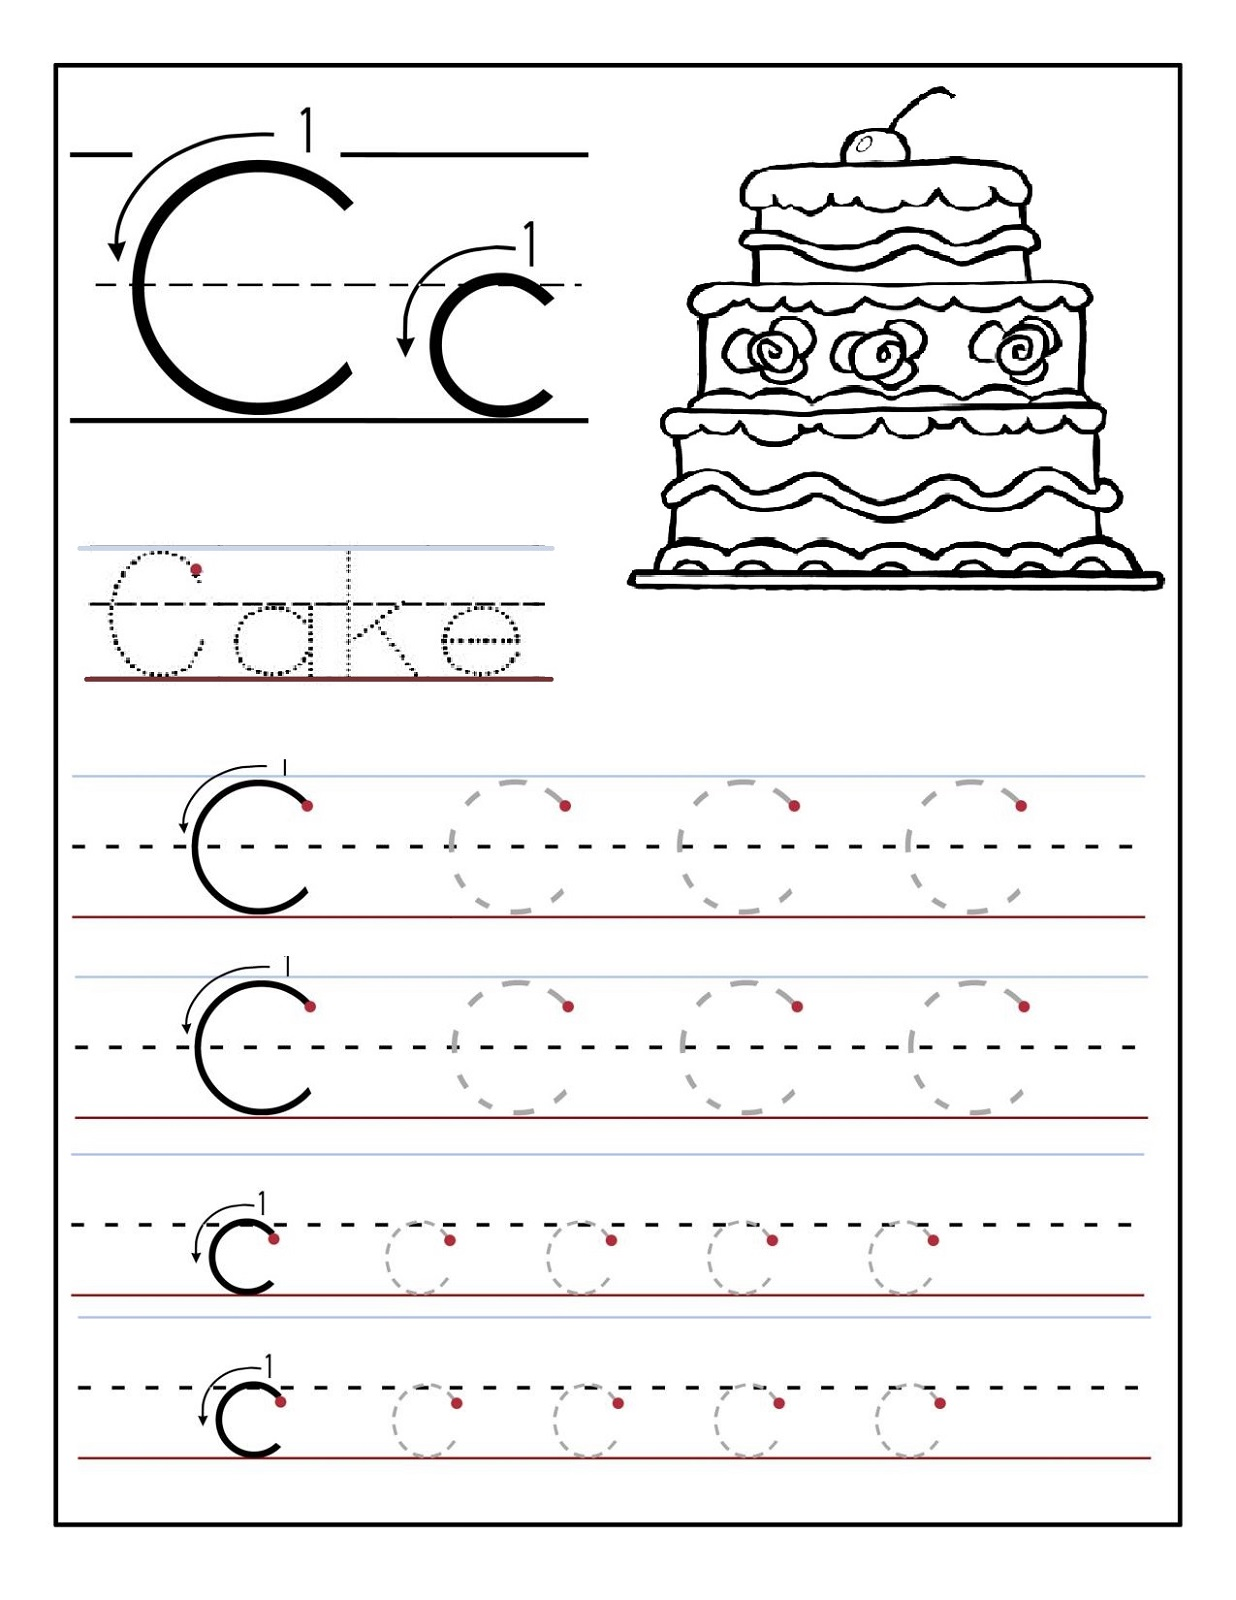 trace letter c worksheets activity shelter. Black Bedroom Furniture Sets. Home Design Ideas